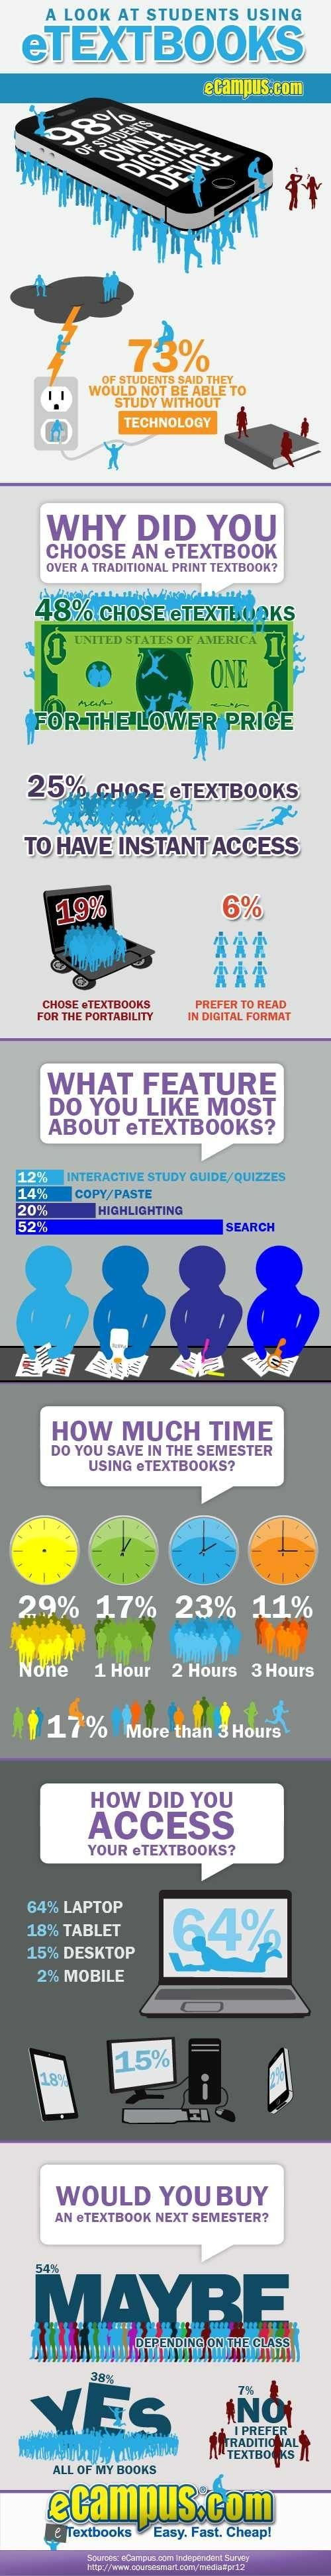 How do students use eTextbooks?